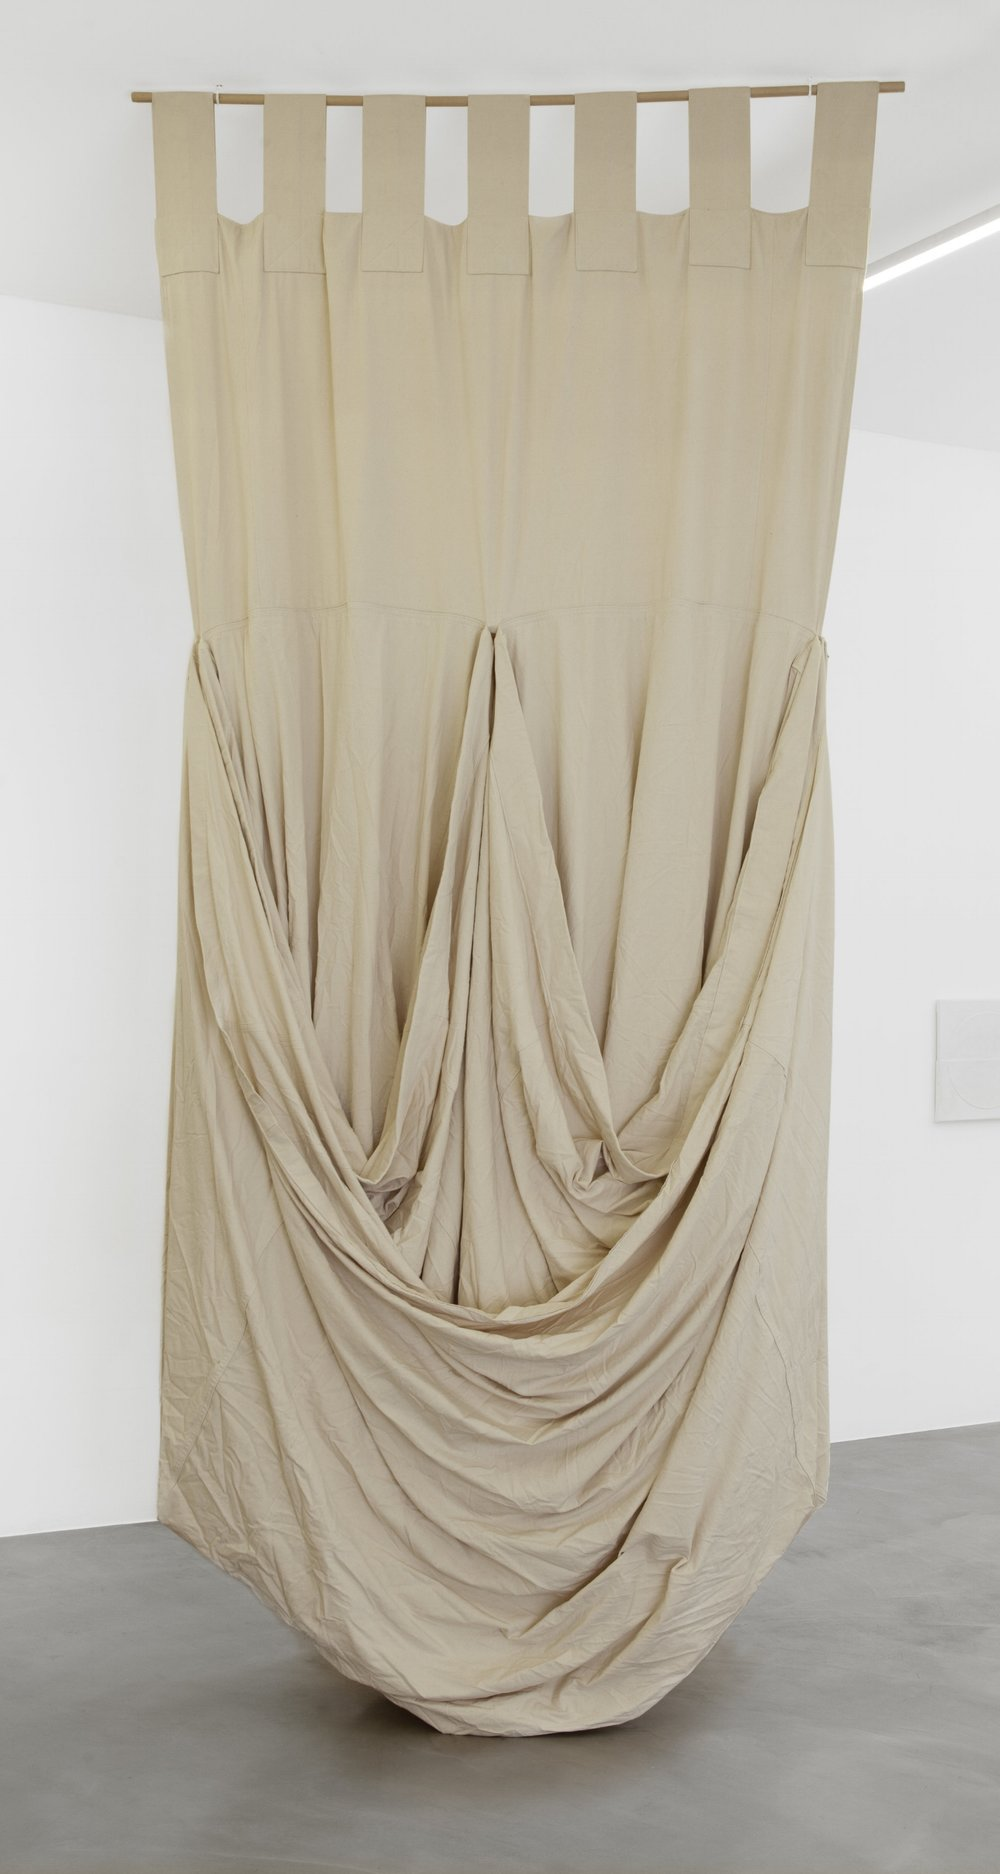 Friedrich Teepe  1985-5 , 1985 cotton, raw, 400 x 200 x 120 cm